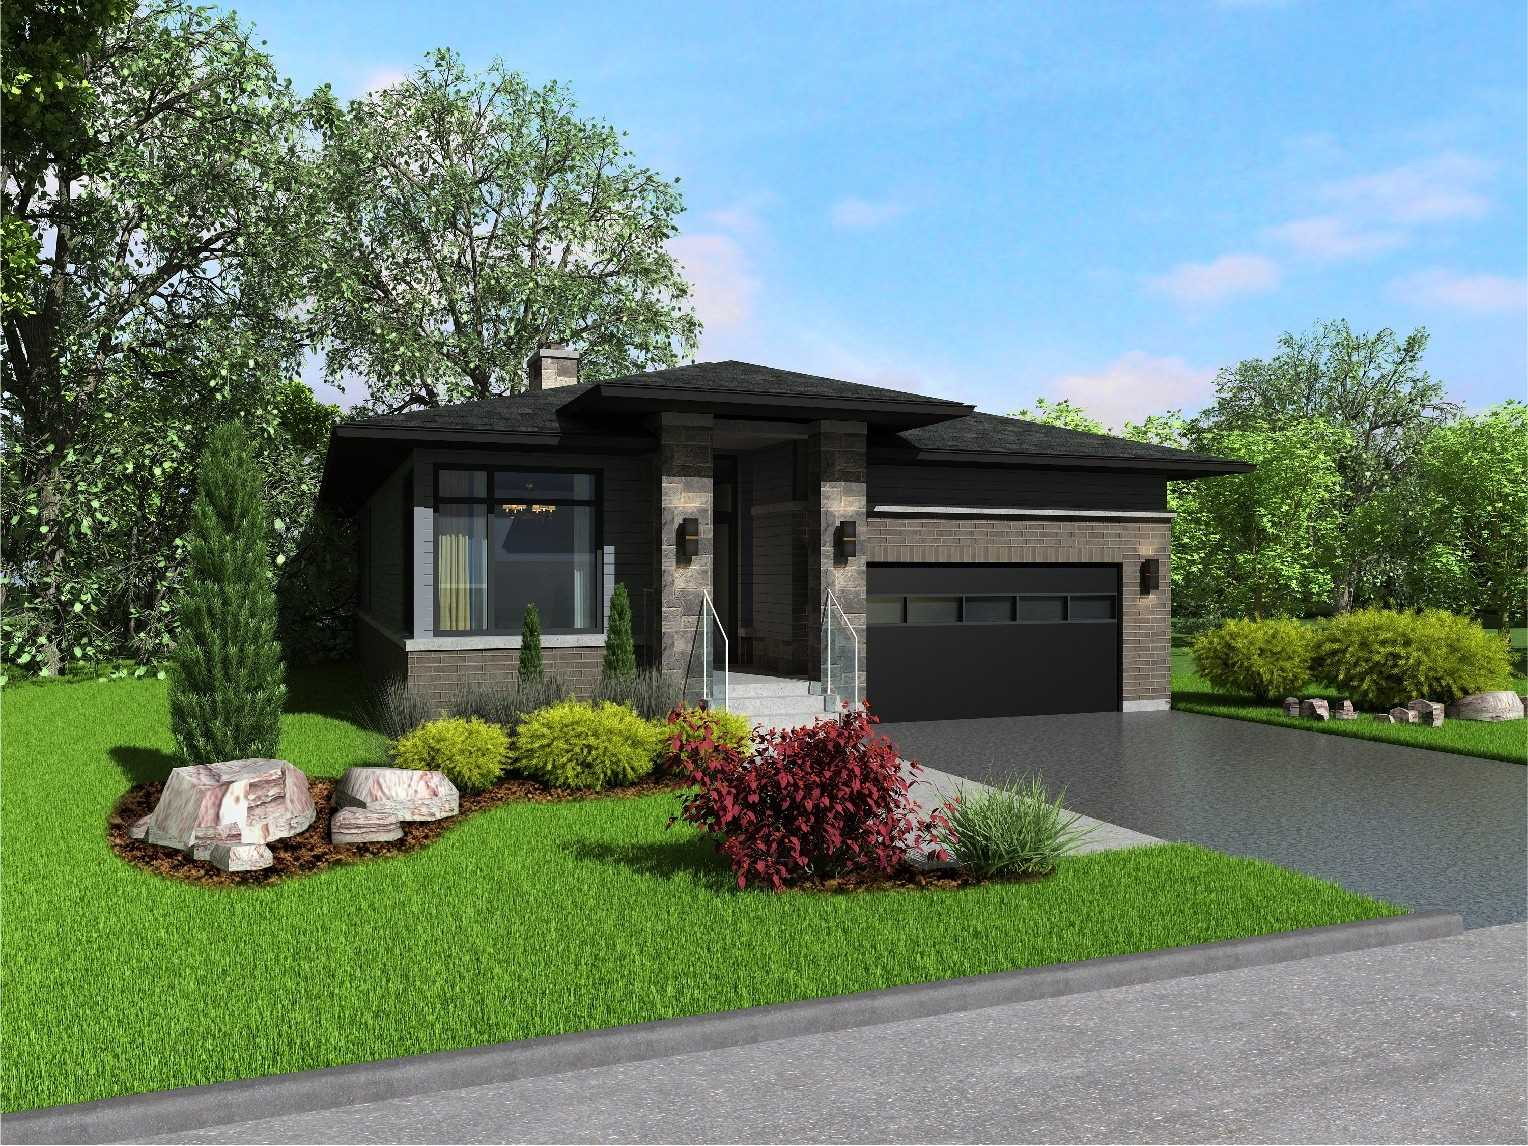 The Ruppell - 1,573 Sq. Ft. Contemporary Bugalow With 3 Bedrooms, 2 Bathrooms.